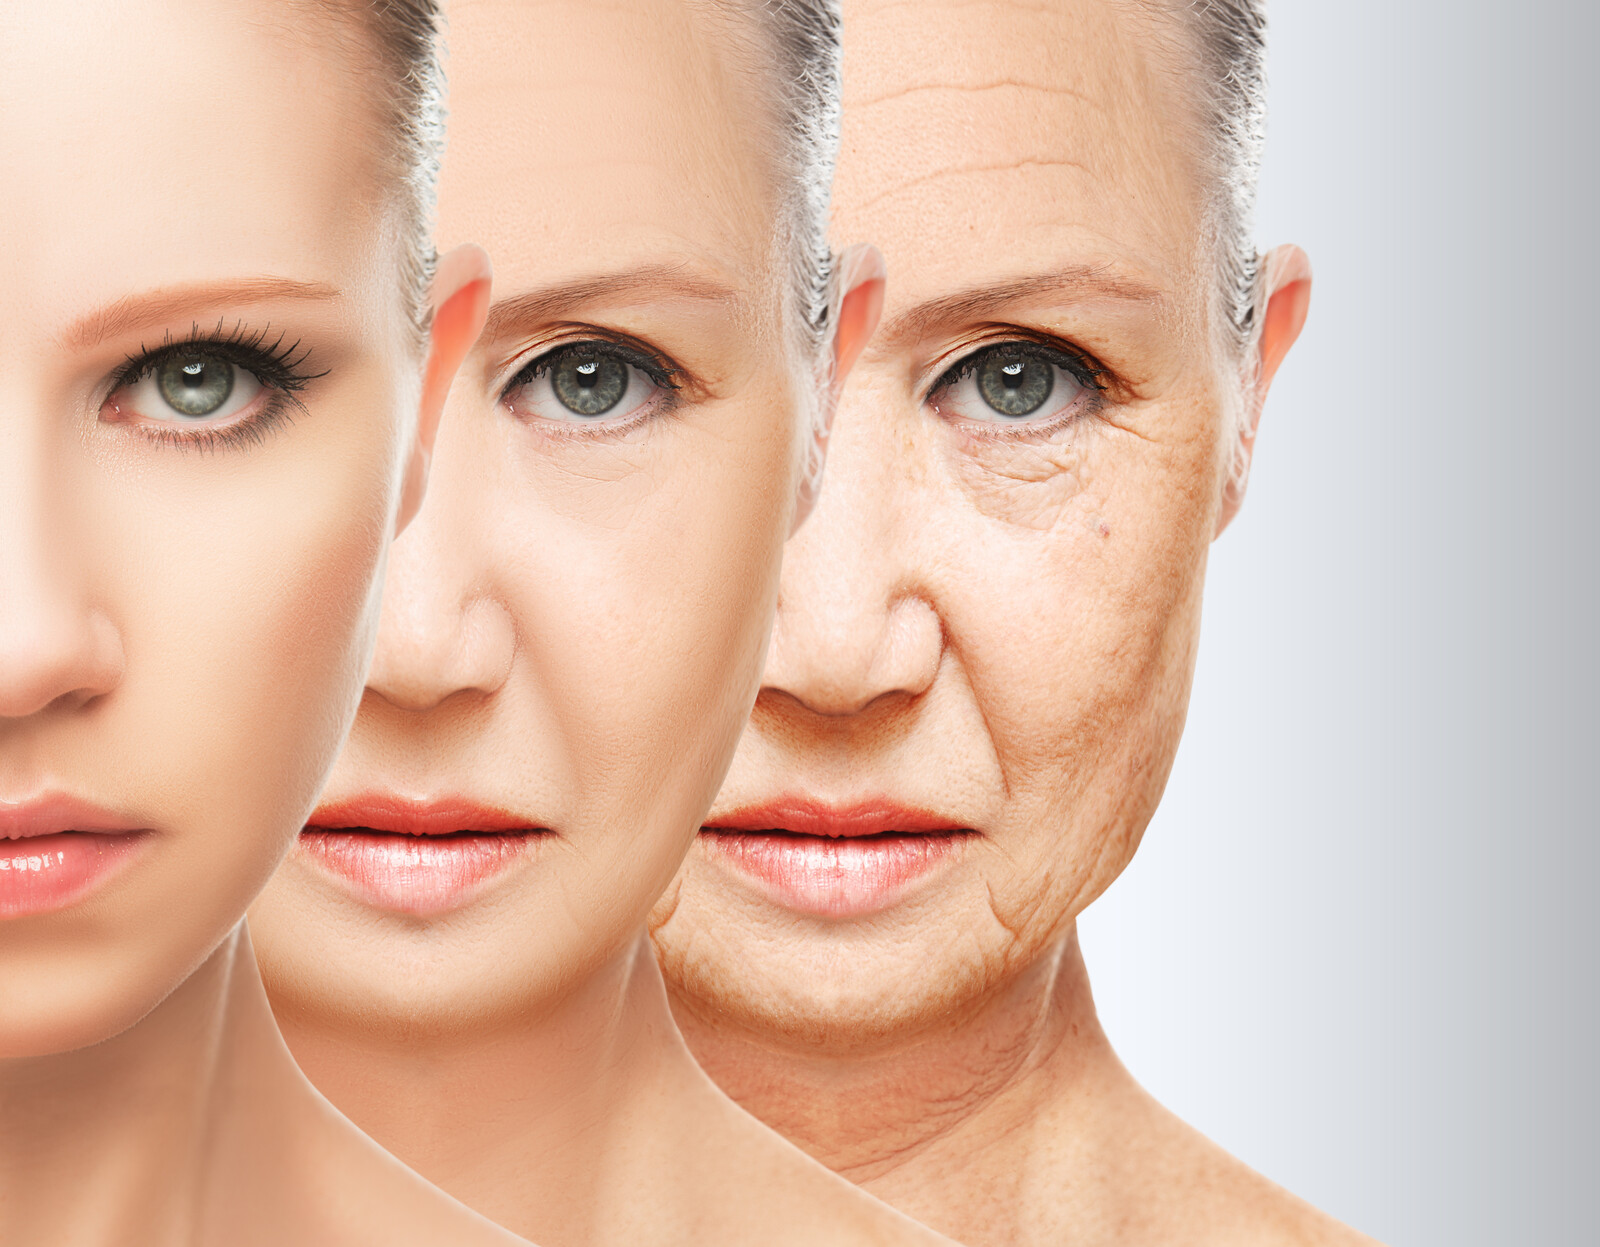 Anti-Aging Scams - Photo  with three images of a woman's face at different ages showing the changes of time